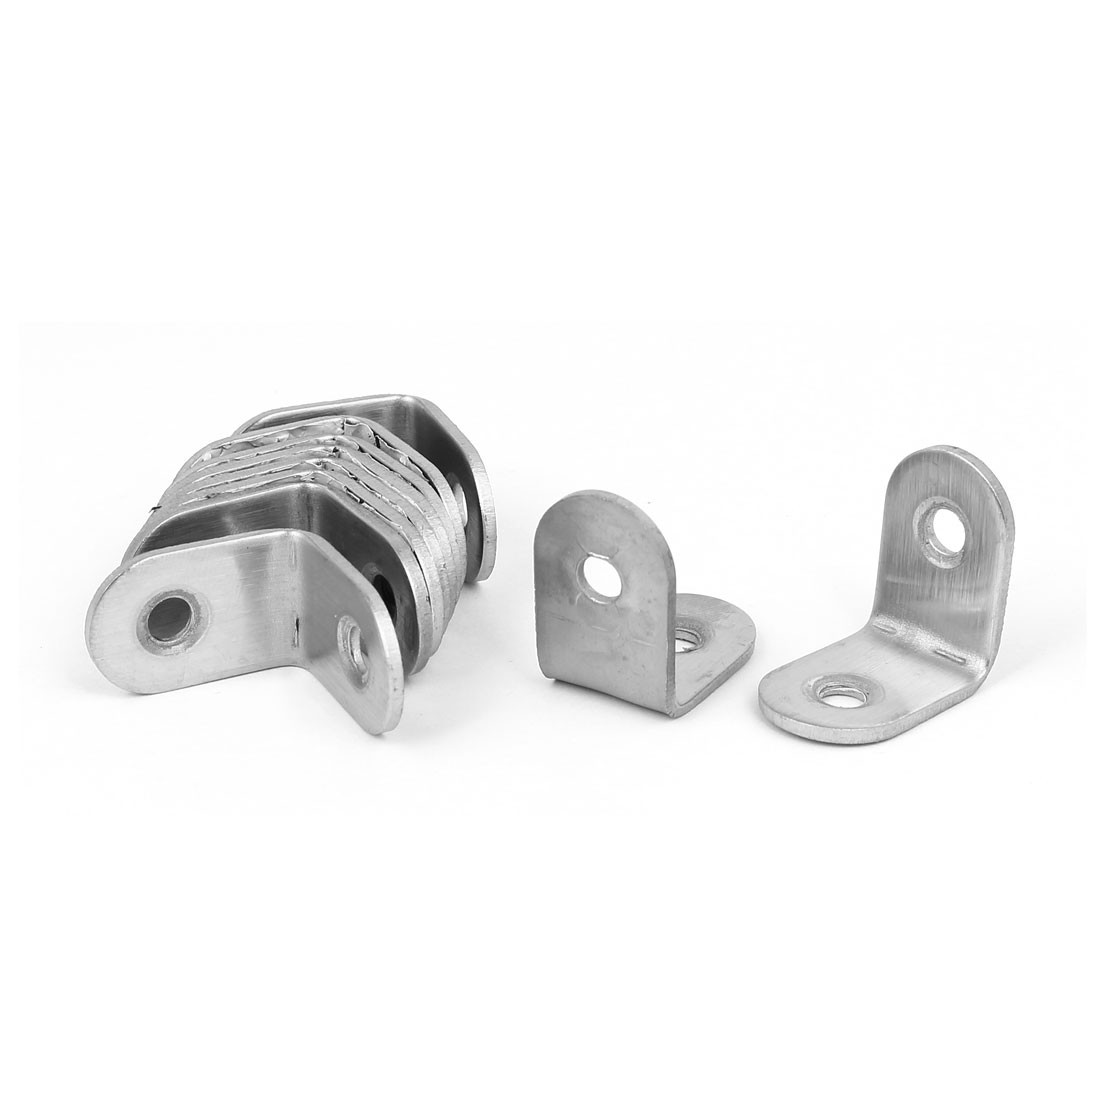 25mmx25mm Stainless Steel 90 Degree Corner Brace Angle Bracket Connector 10pcs